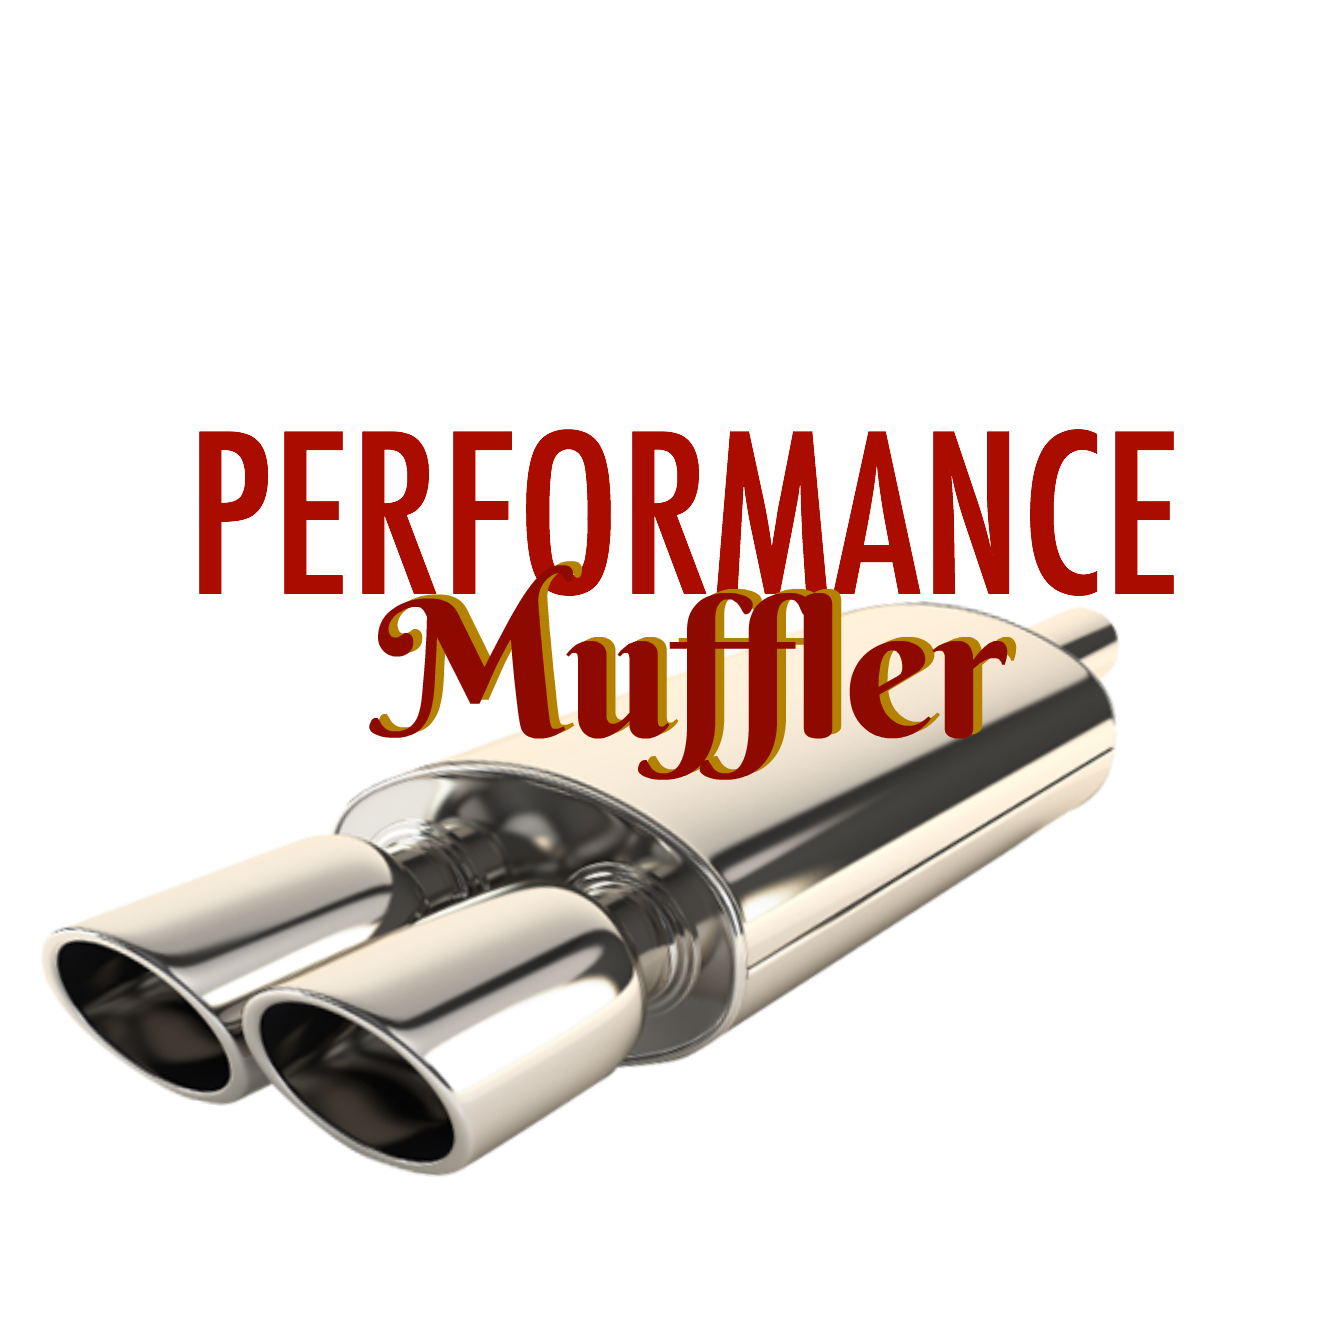 Car exhaust pipe clipart freeuse download Performance Muffler | (918) 361-0269 | Sand Springs Muffler Shop freeuse download